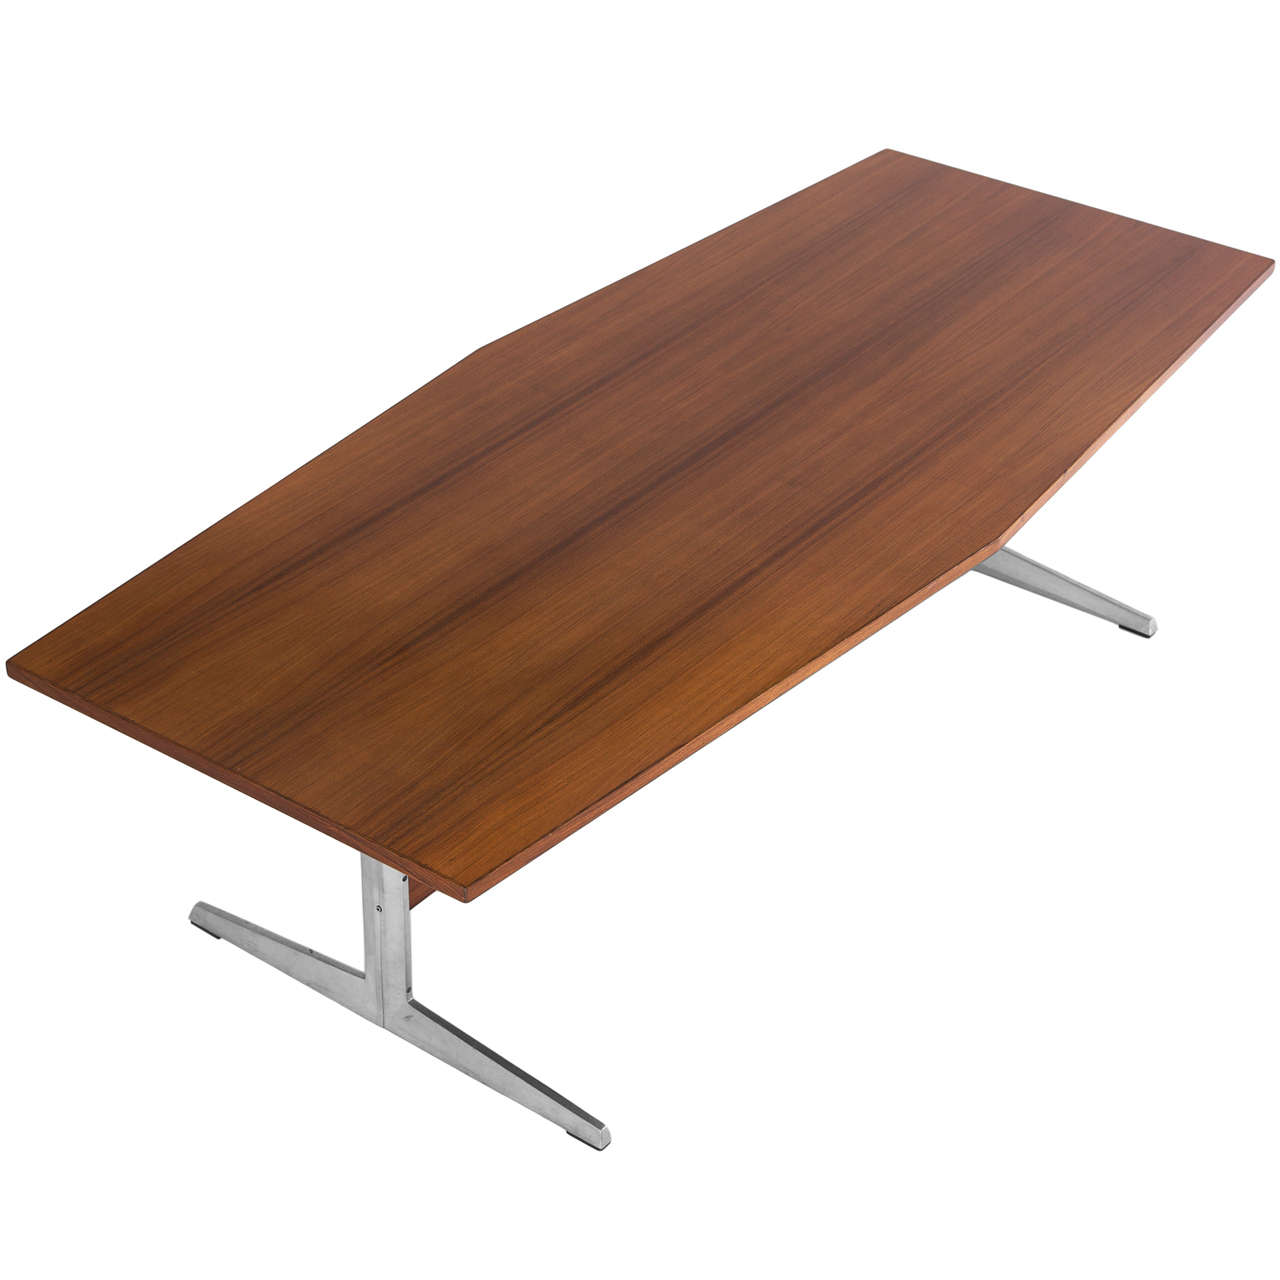 Rosewood dining table with aluminum frame for sale at 1stdibs for Dining table frame